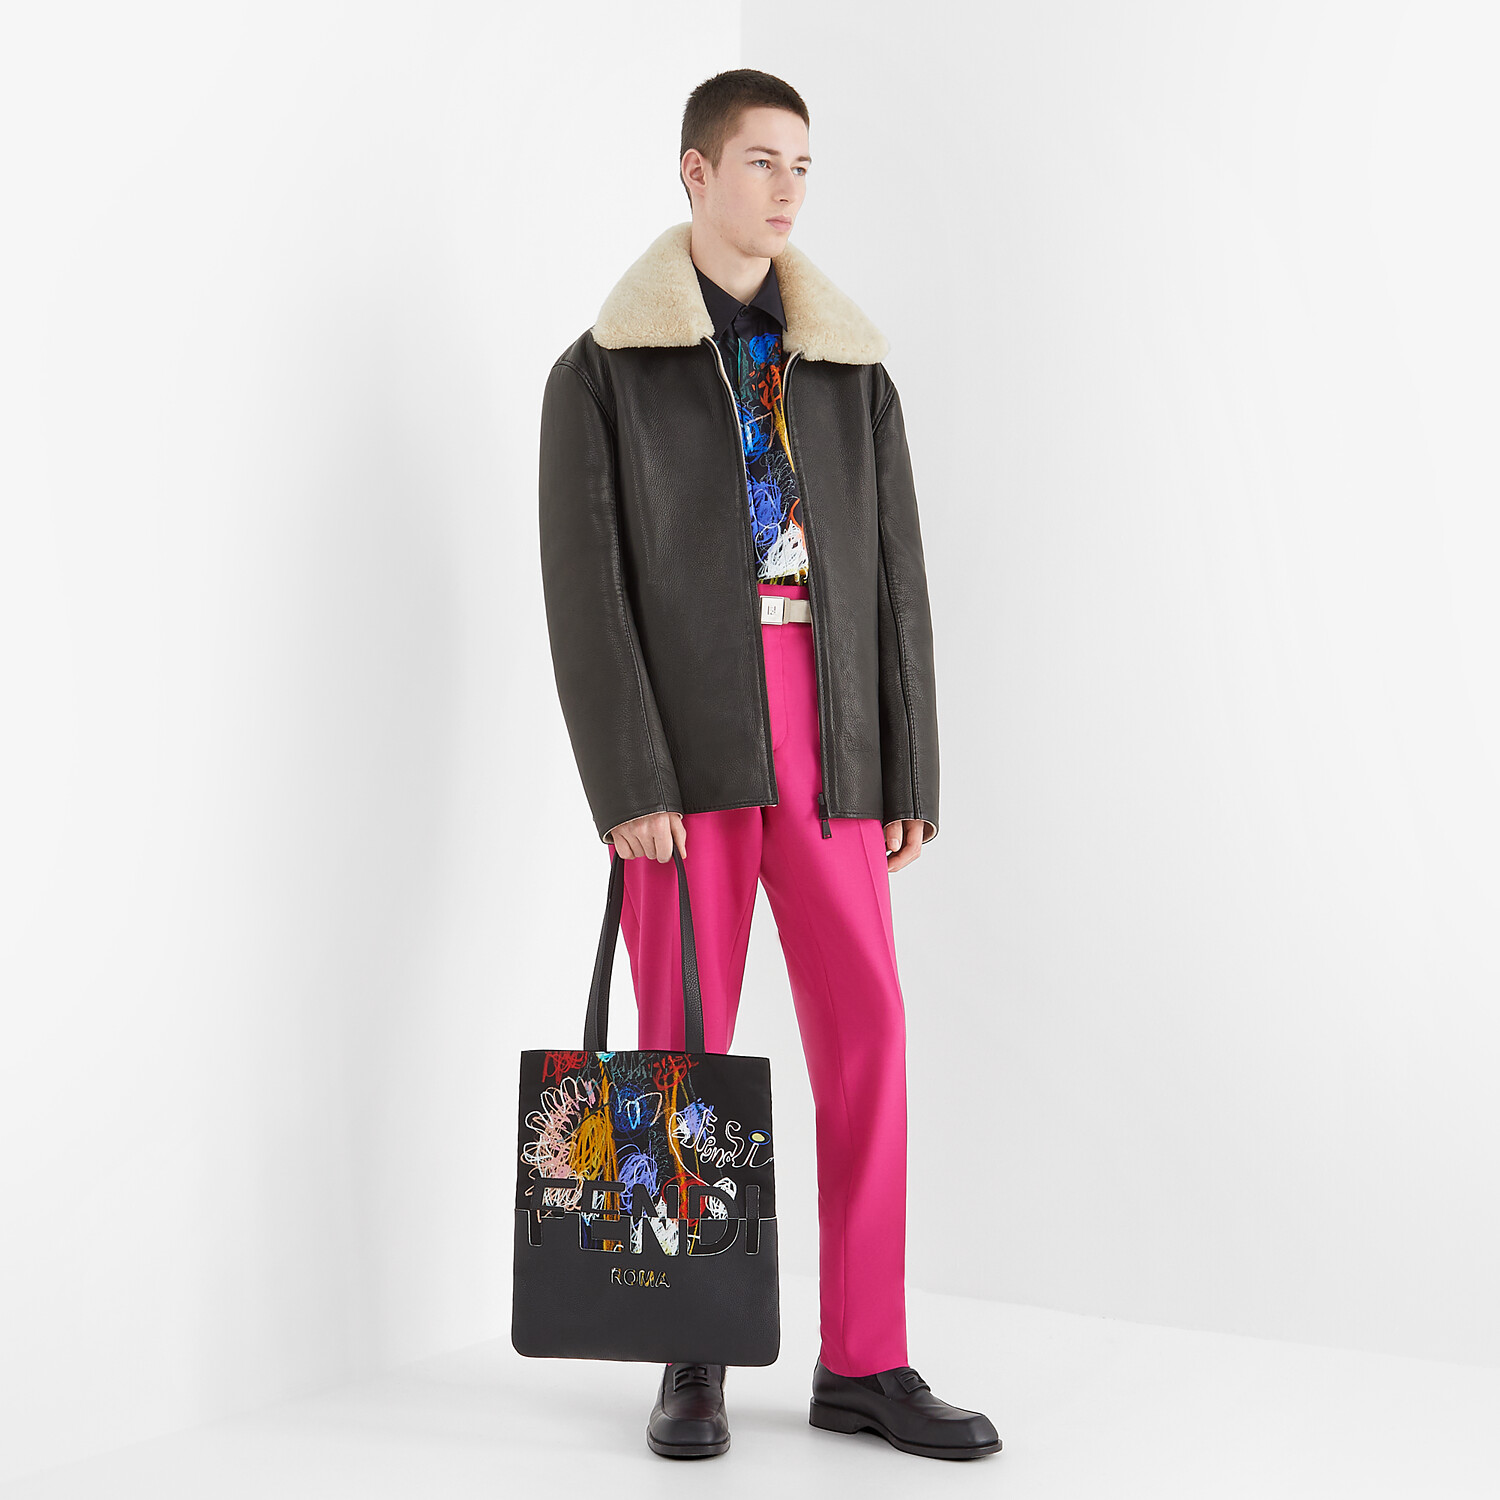 FENDI FLAT SHOPPING BAG - Multicolor nylon and leather bag - view 6 detail